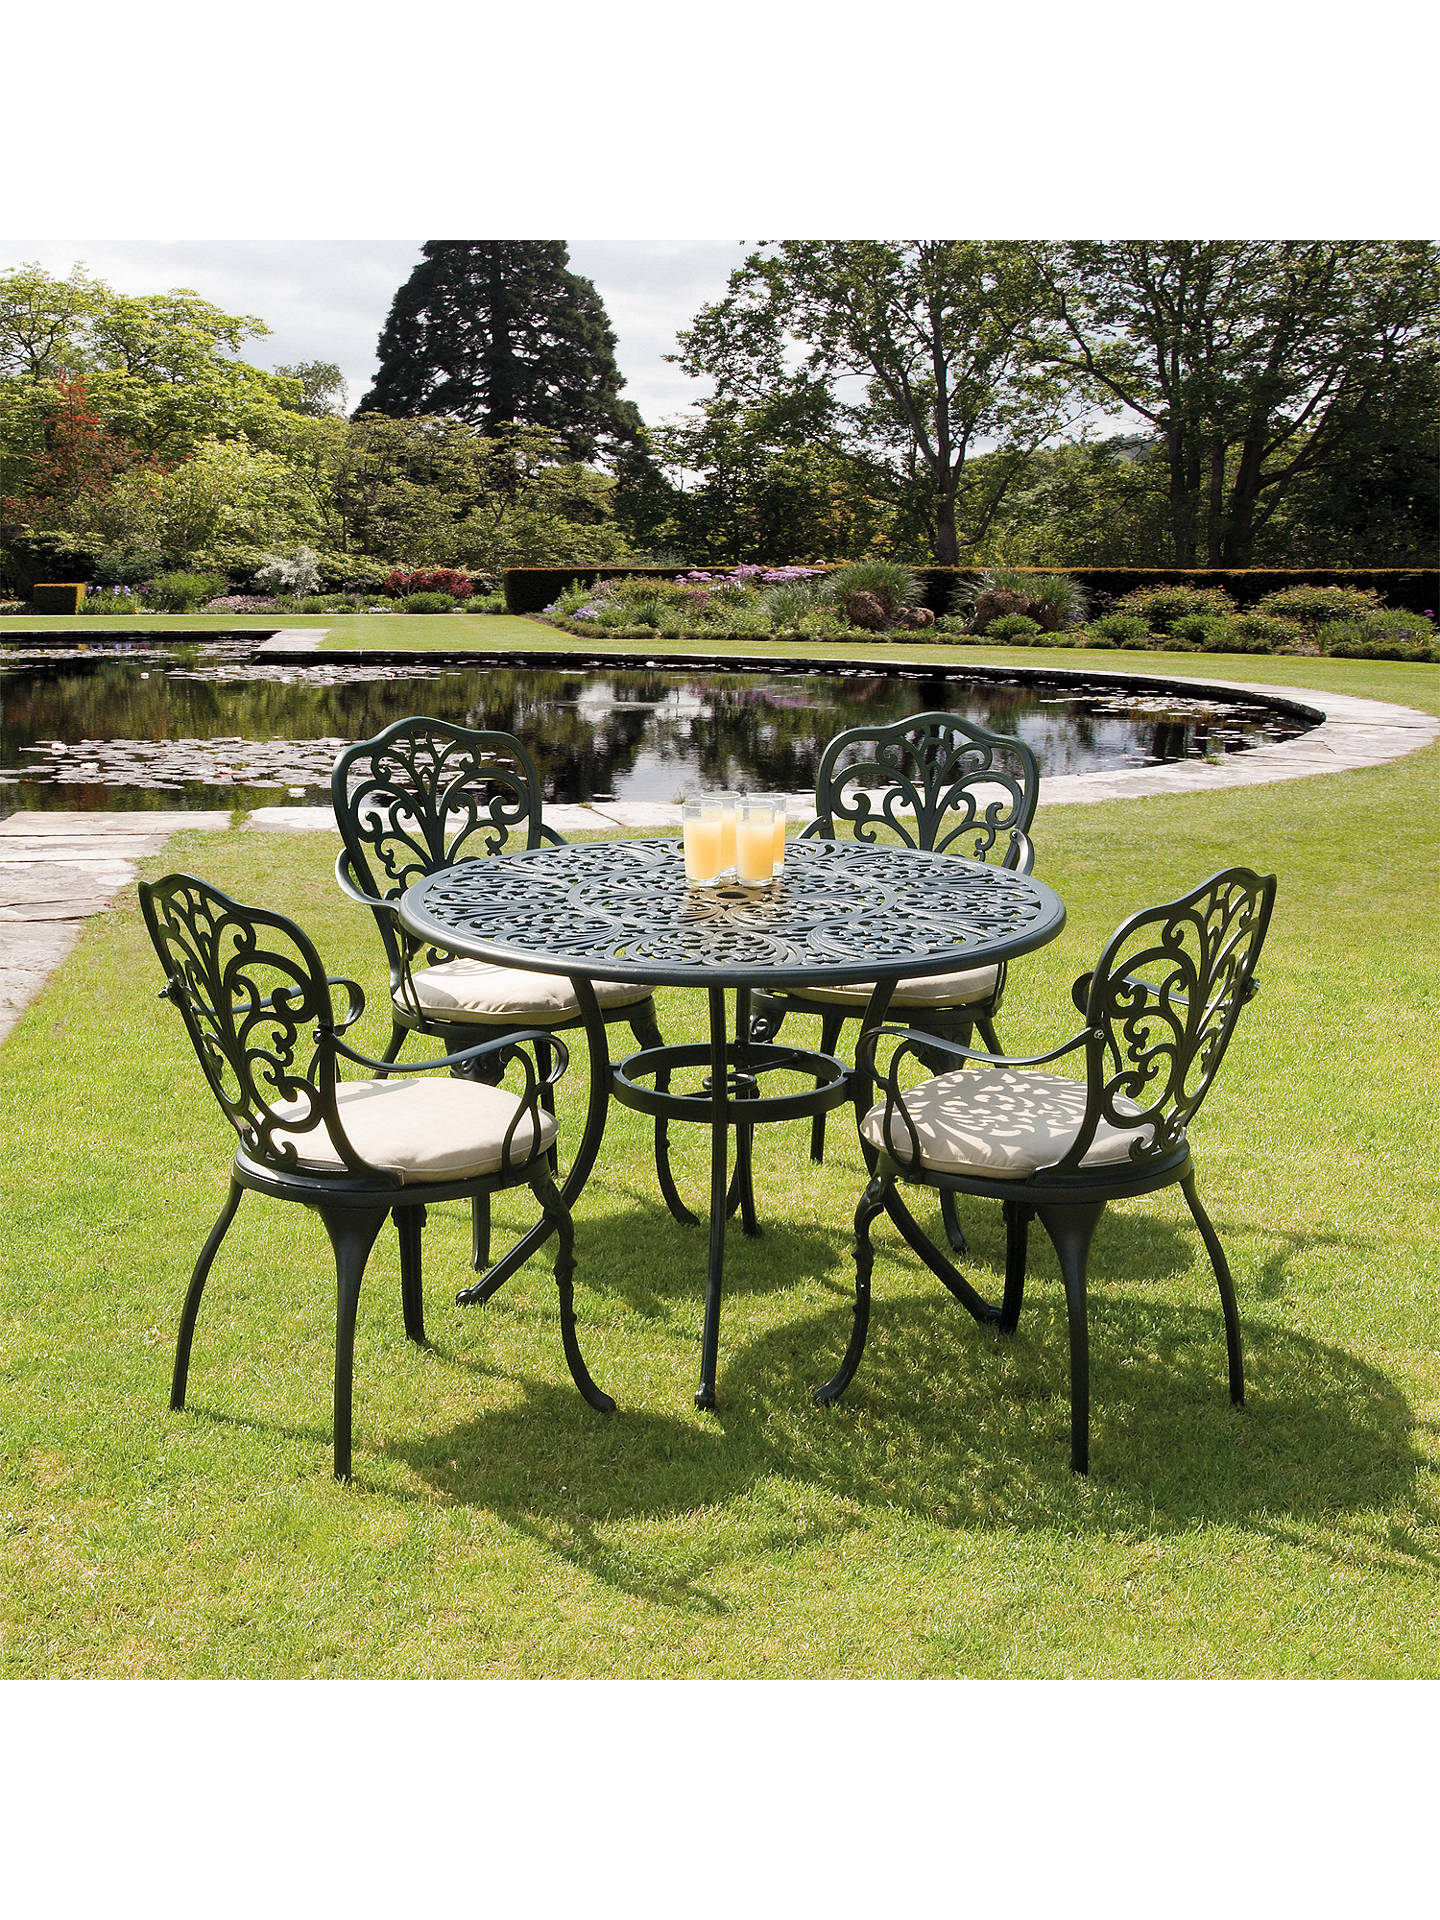 Suntime Sussex Aluminium 10-Seater Outdoor Dining Table and Chairs